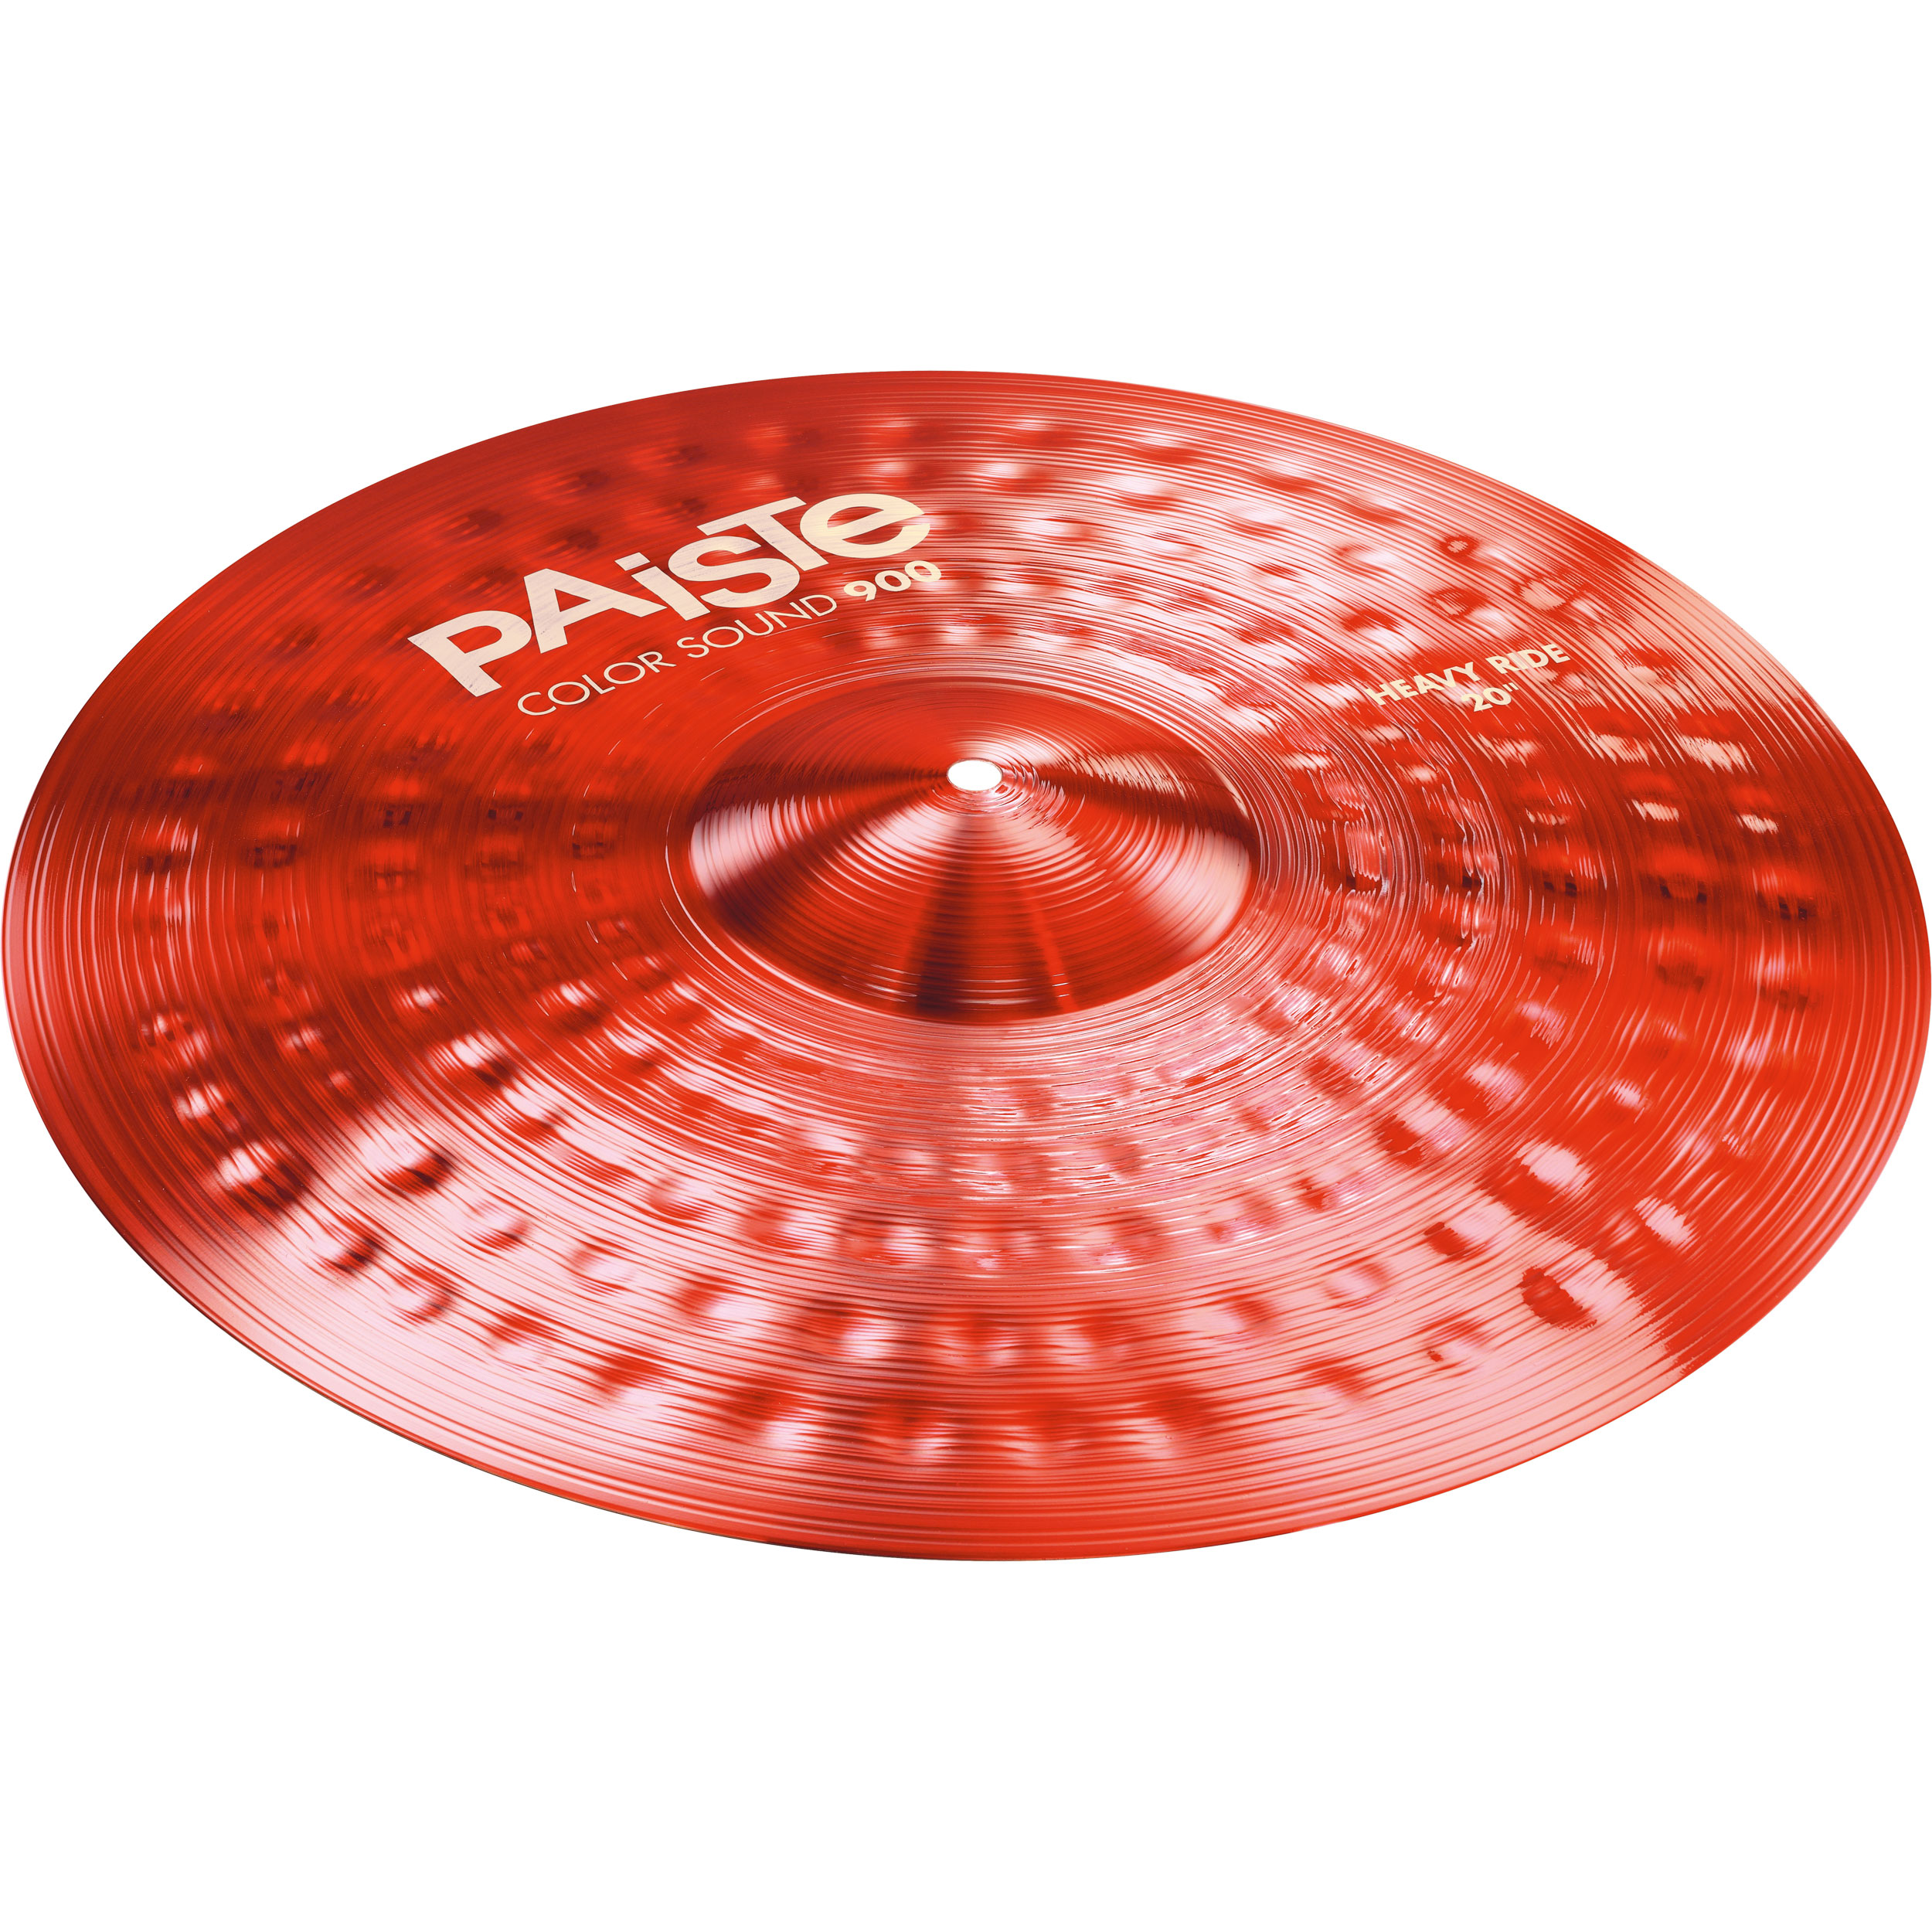 """Paiste 20"""" Color Sound 900 Red Heavy Crash Cymbal"""